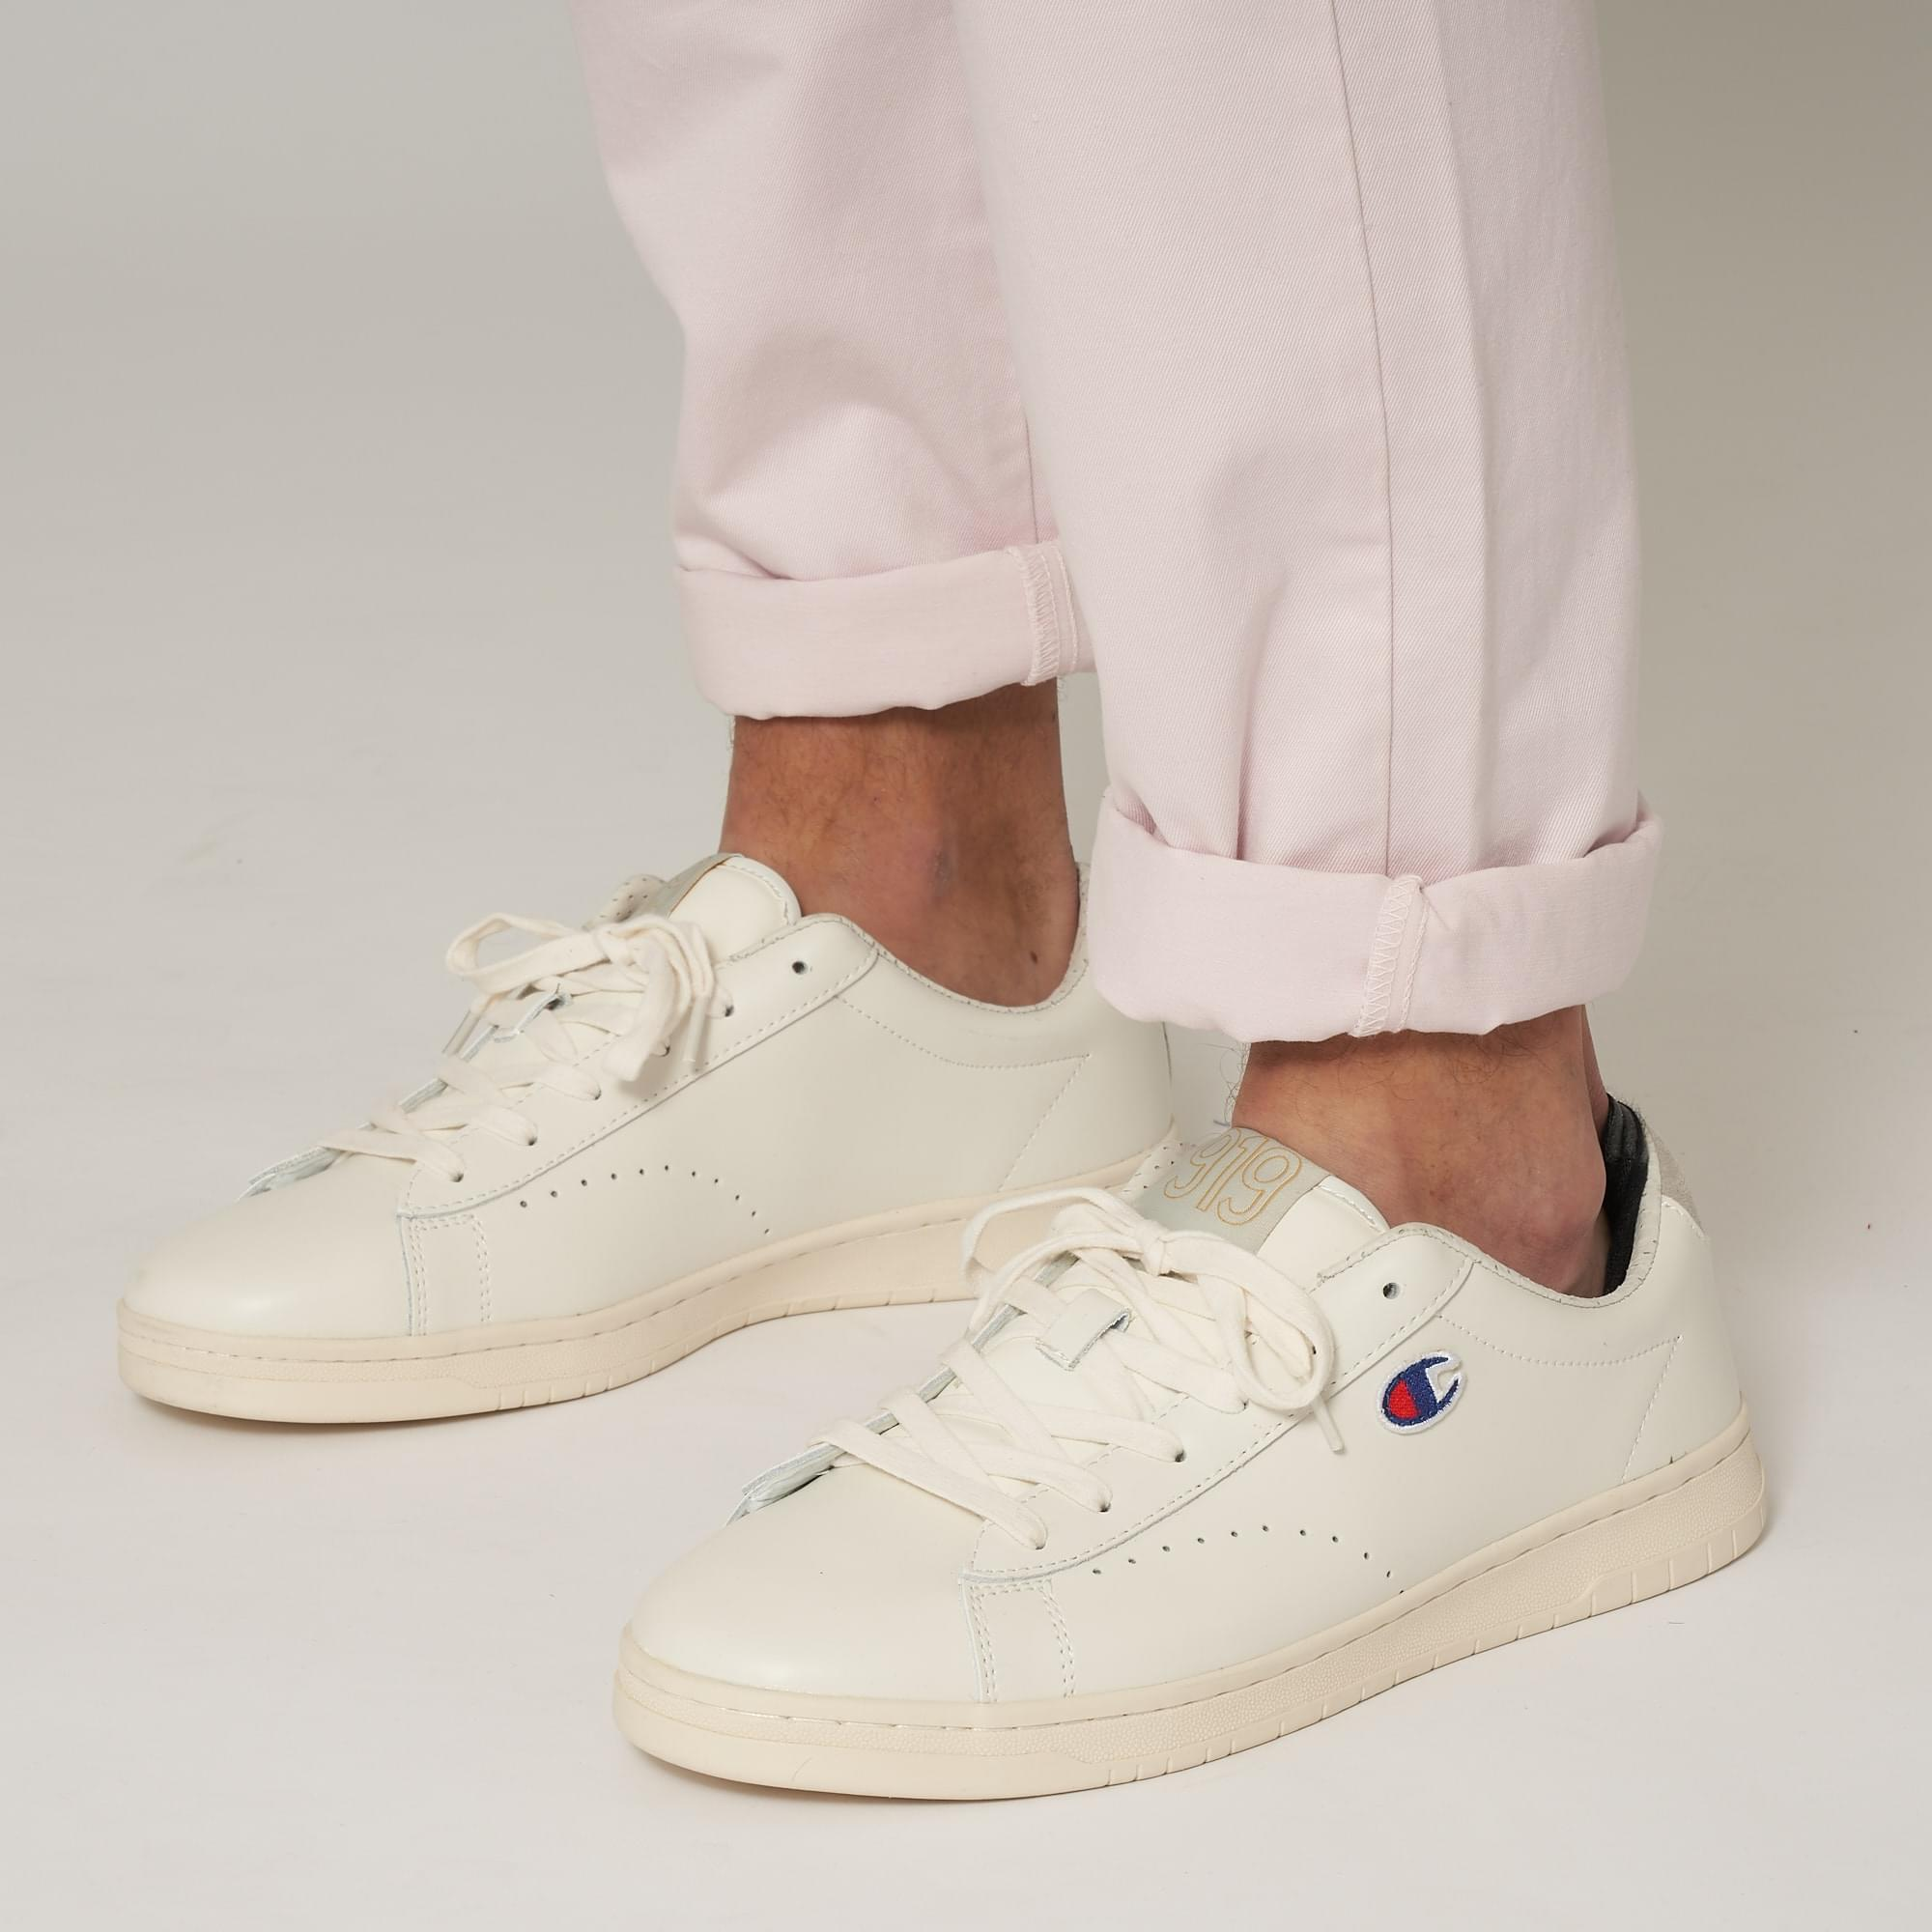 55352a2b36b50 Lyst - Champion 919 Low Top  c  Patch Trainers - White in White for ...